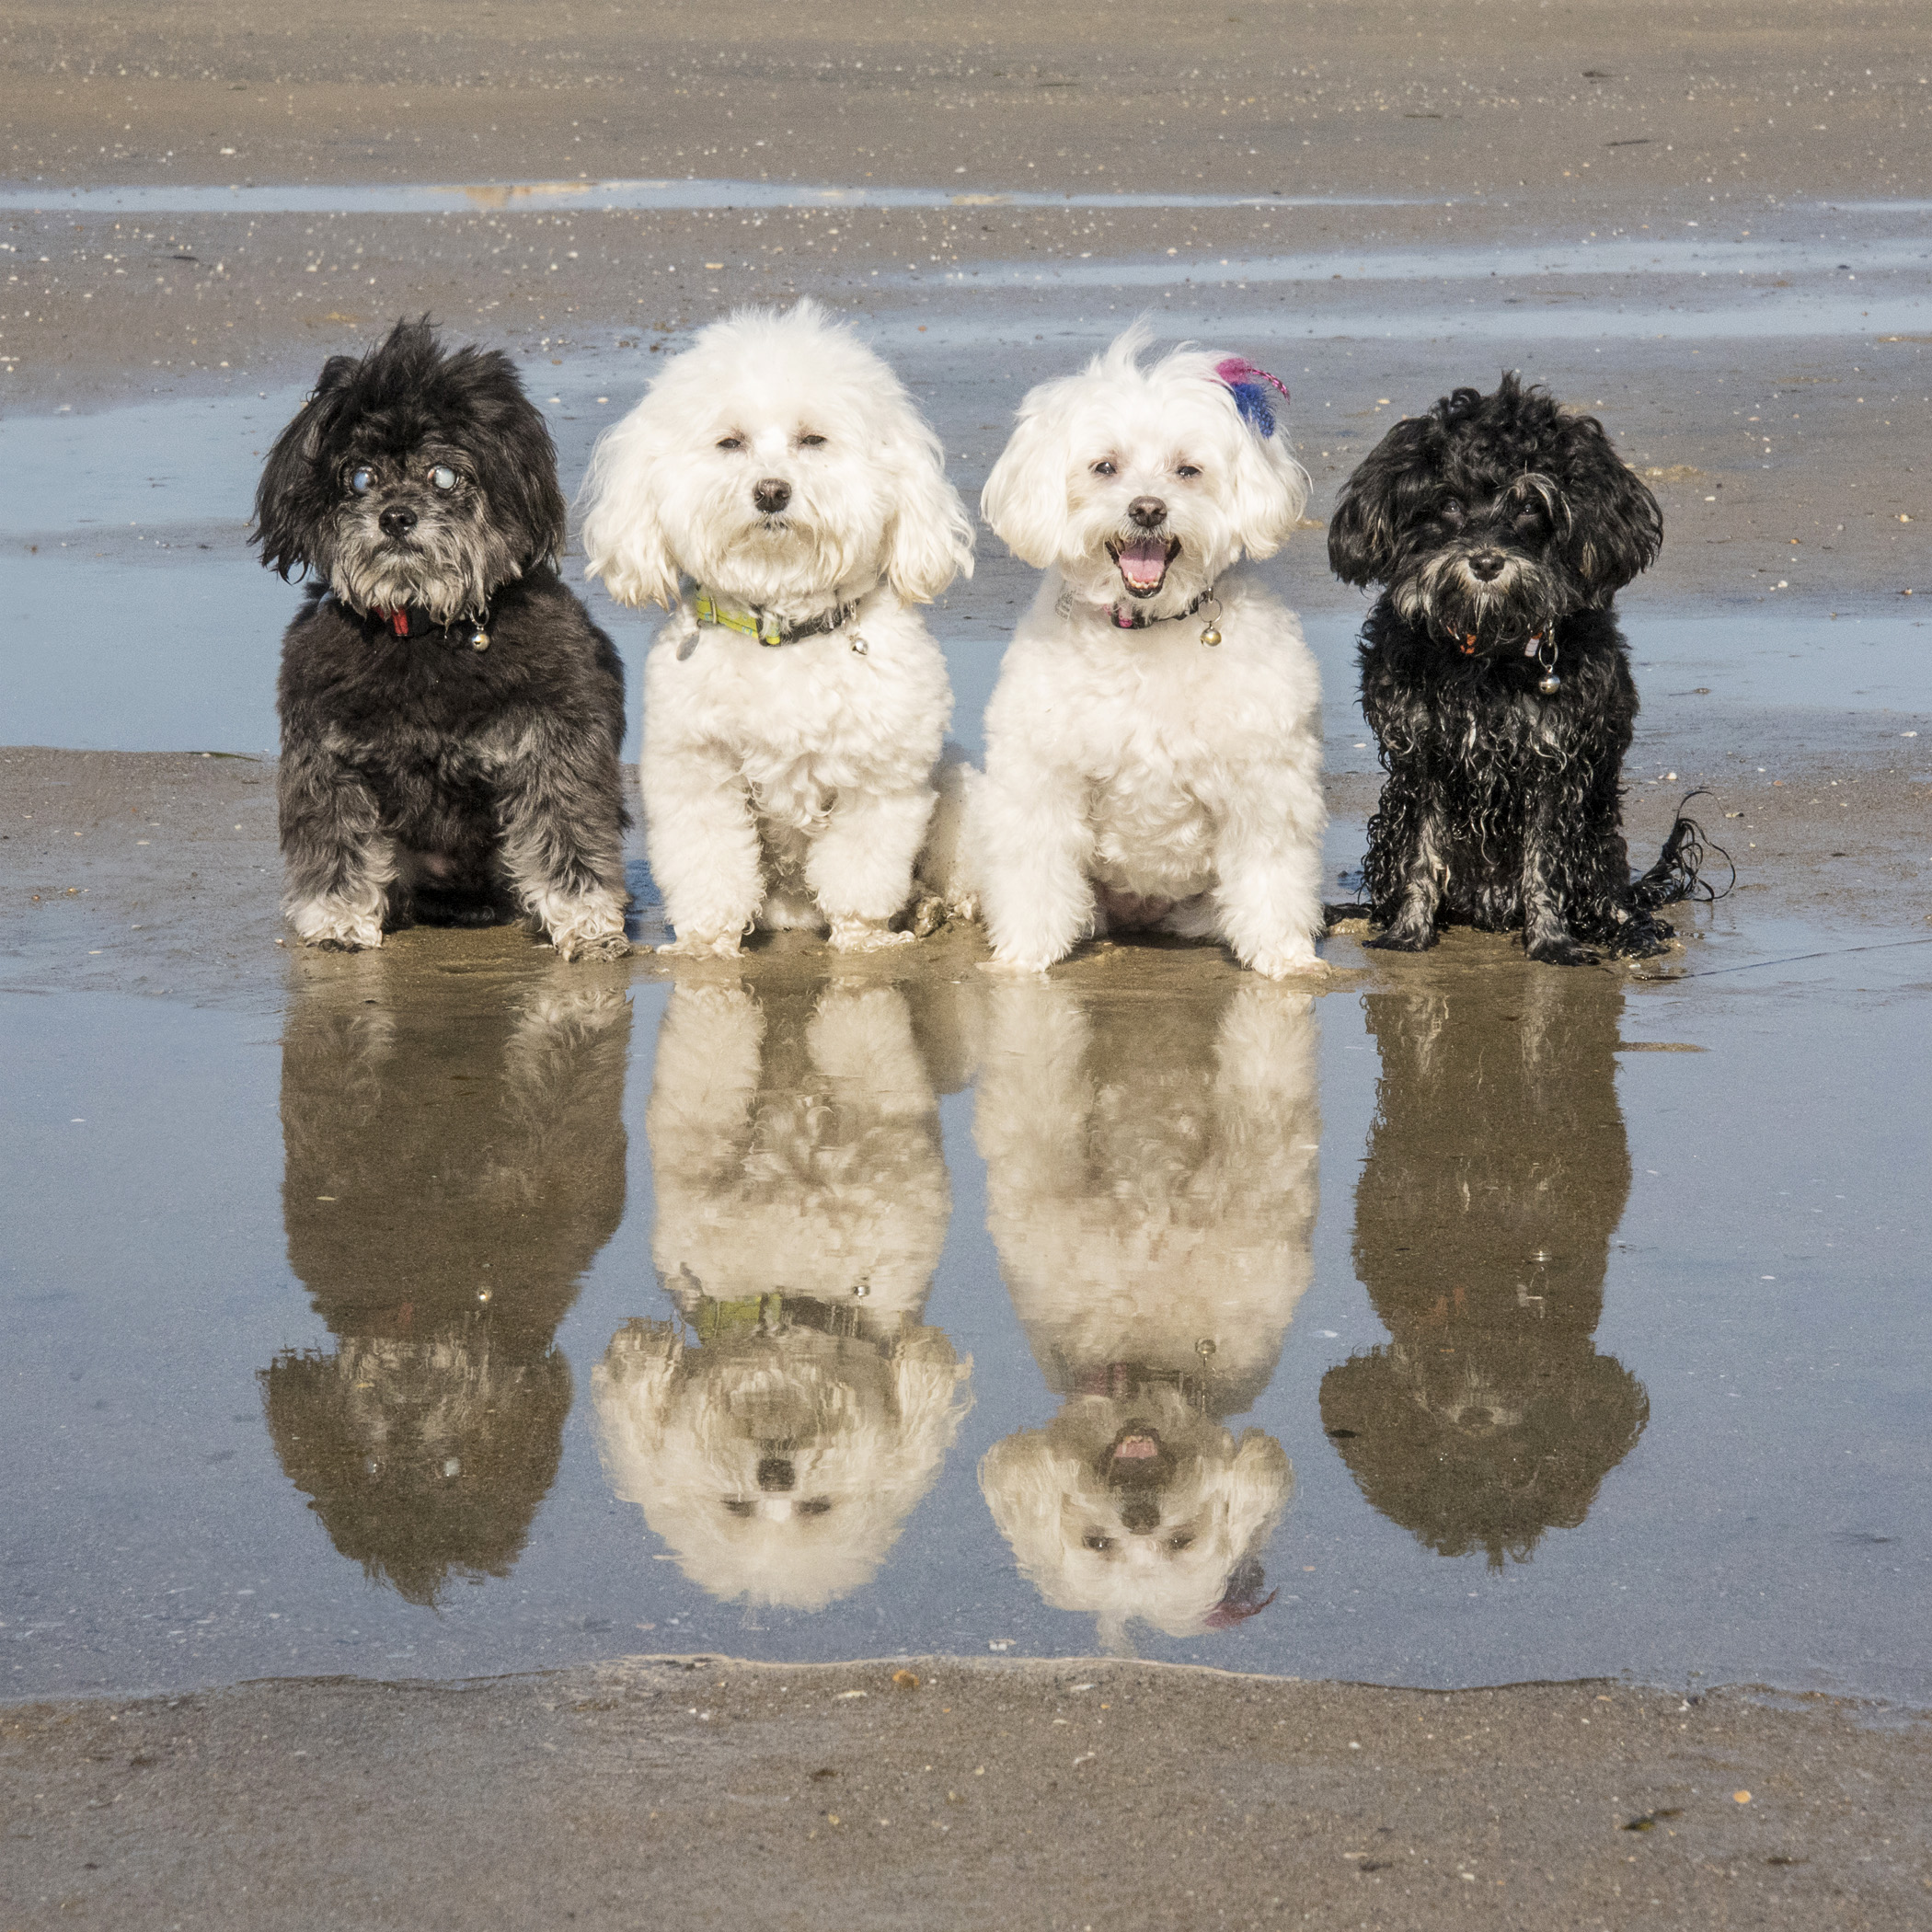 It's pretty obvious who's all about the posing and who just wants to be off playing! Oh, Pebbles!